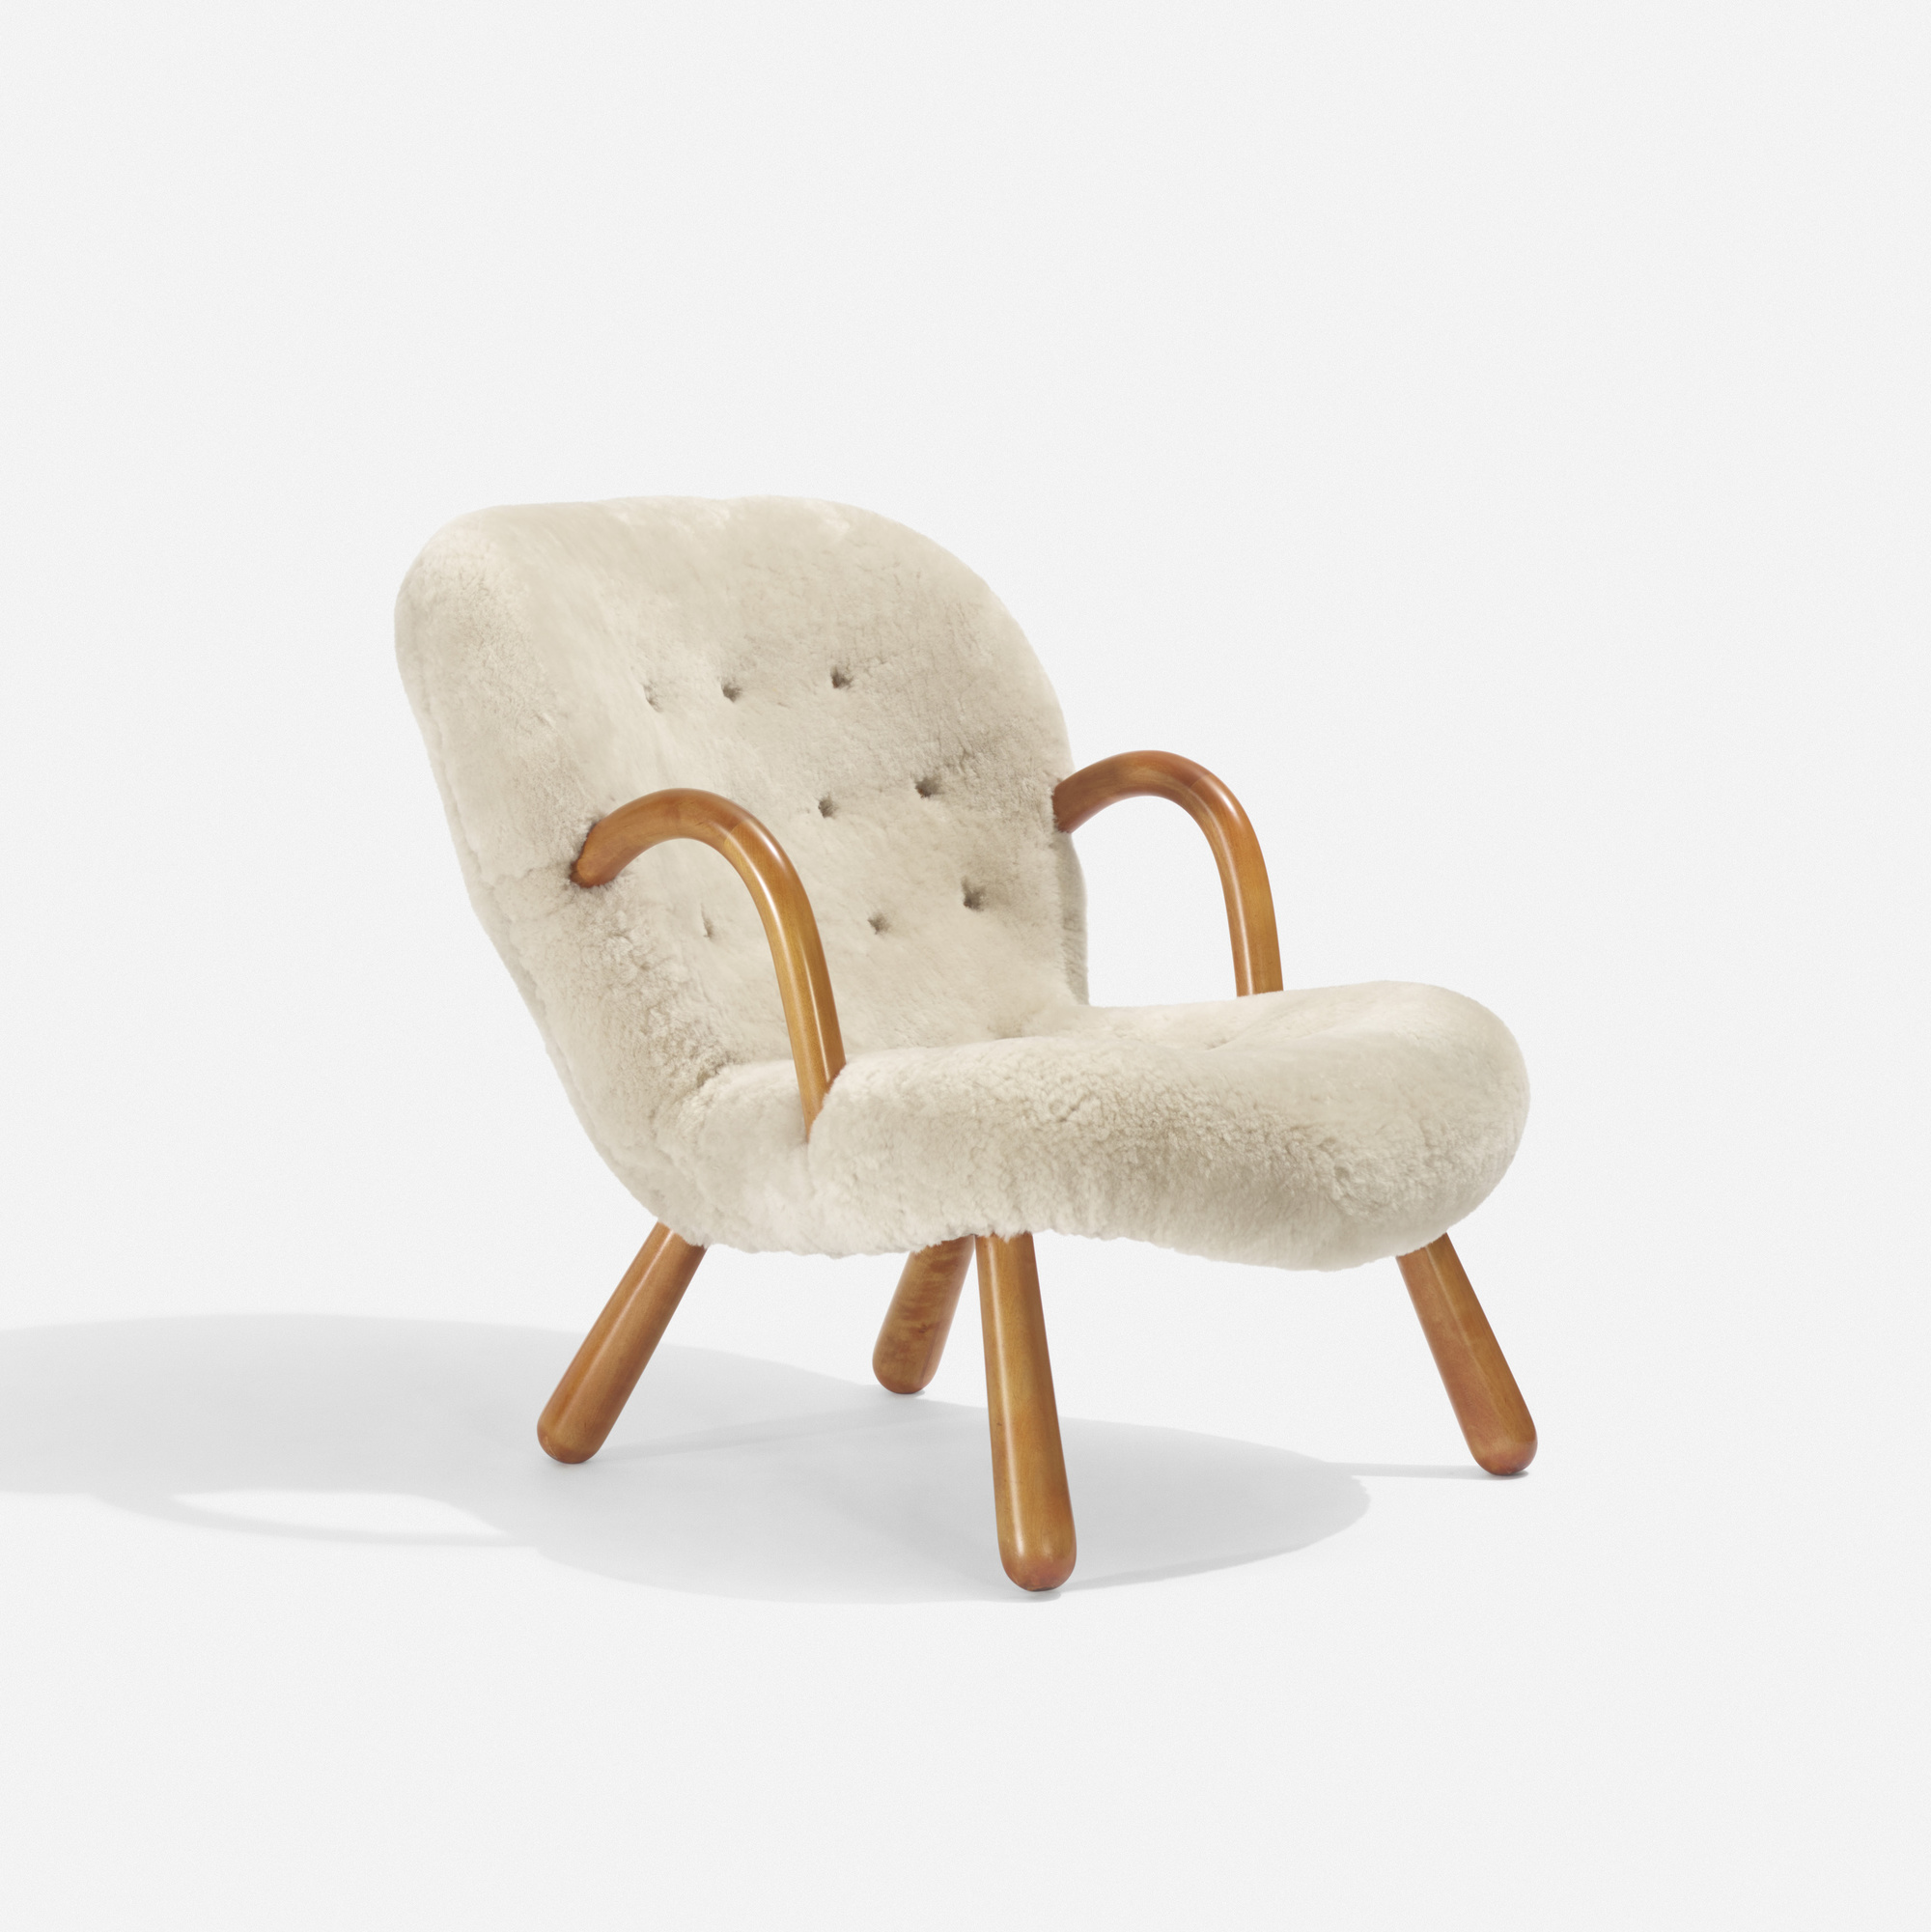 114: Philip Arctander / lounge chair (1 of 4)